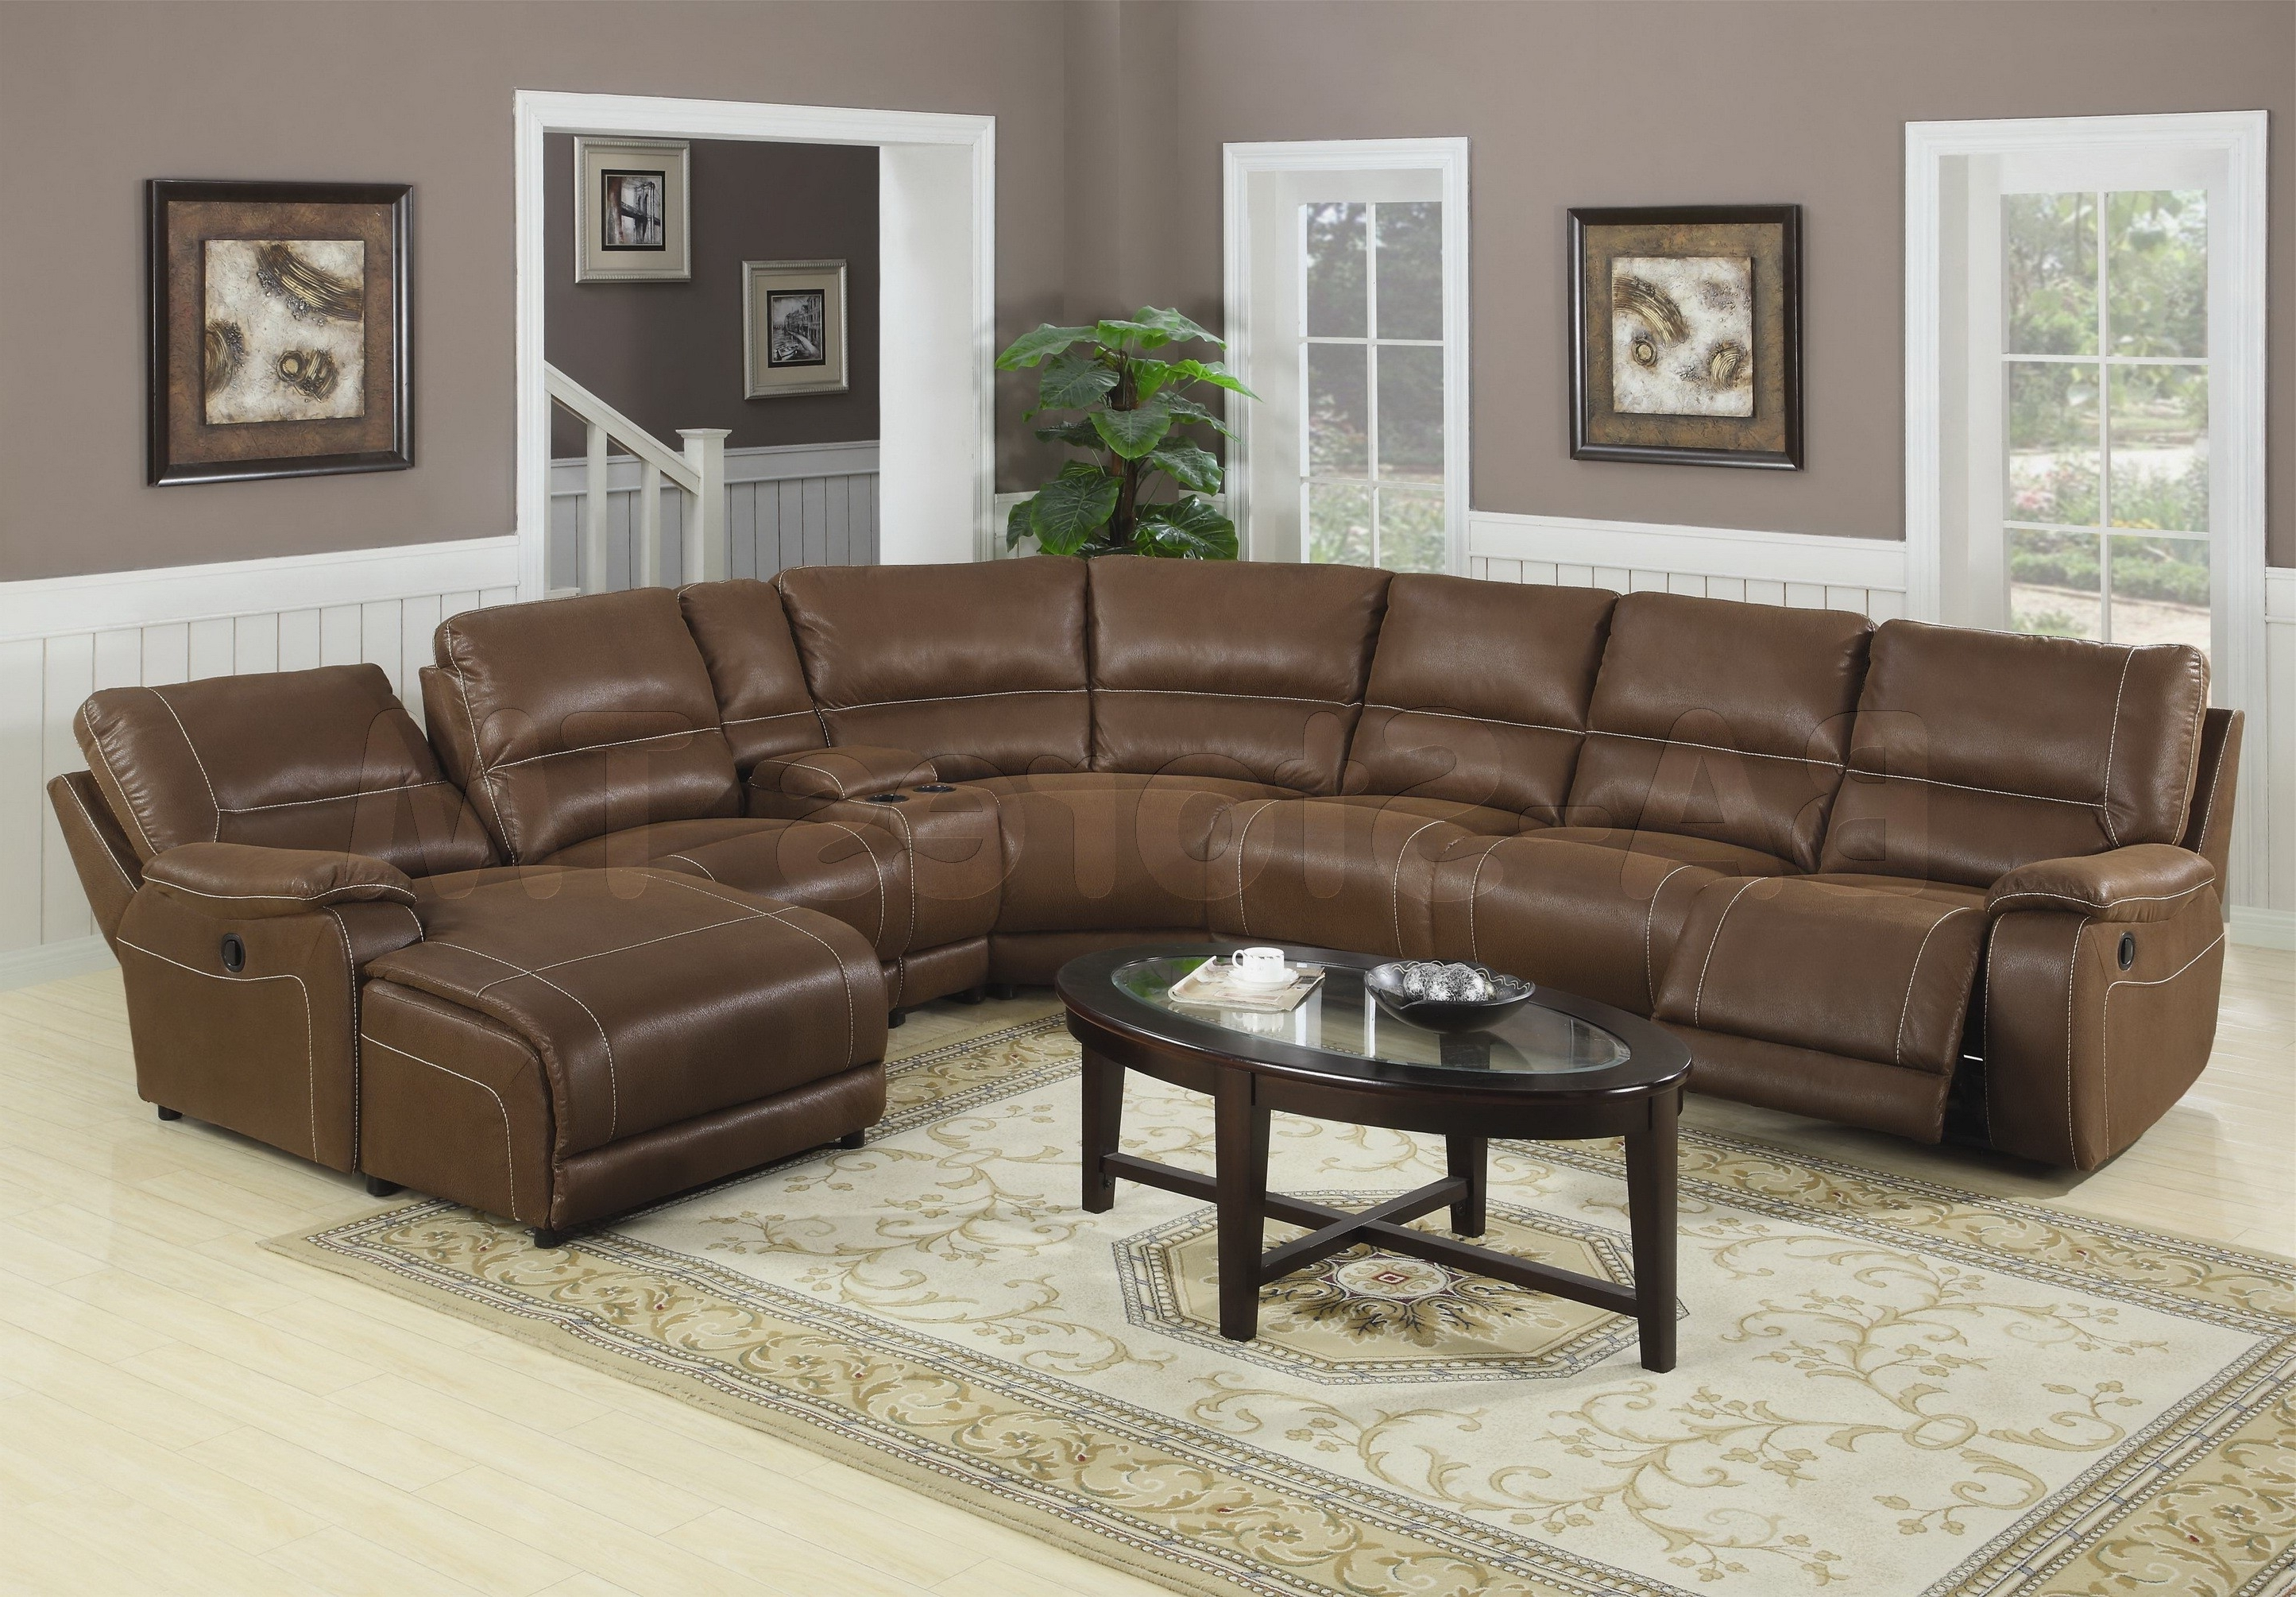 6 Piece Leather Sectional Sofa – Radiovannes With Regard To Current 6 Piece Leather Sectional Sofas (View 3 of 20)